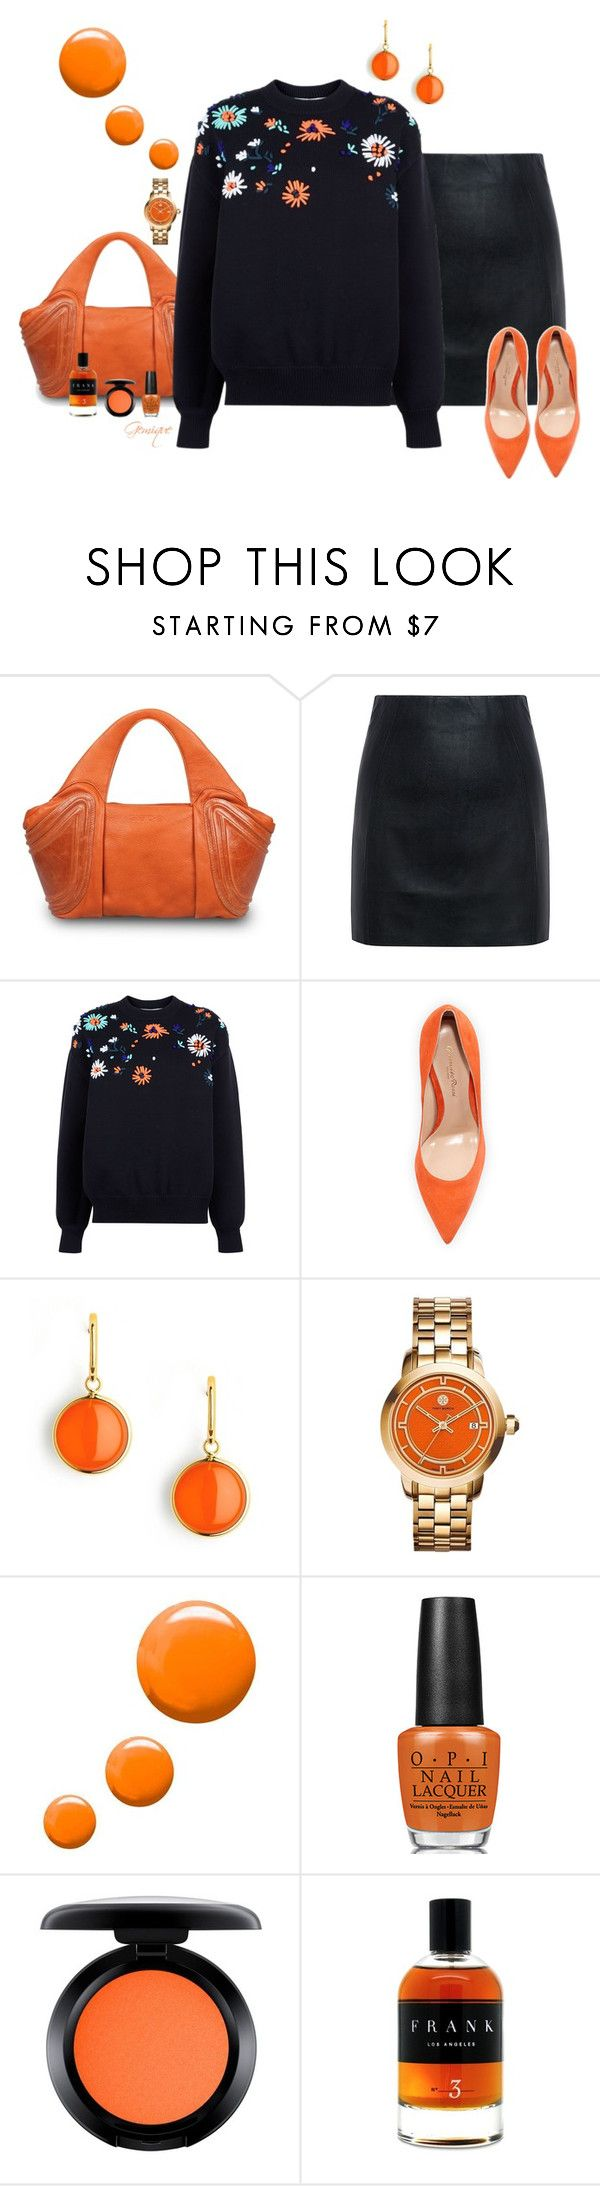 """""""Fall Fun!"""" by gemique ❤ liked on Polyvore featuring GRETCHEN, McQ by Alexander McQueen, Victoria, Victoria Beckham, Gianvito Rossi, Syna, Tory Burch, Topshop, OPI, MAC Cosmetics and Paul Frank"""